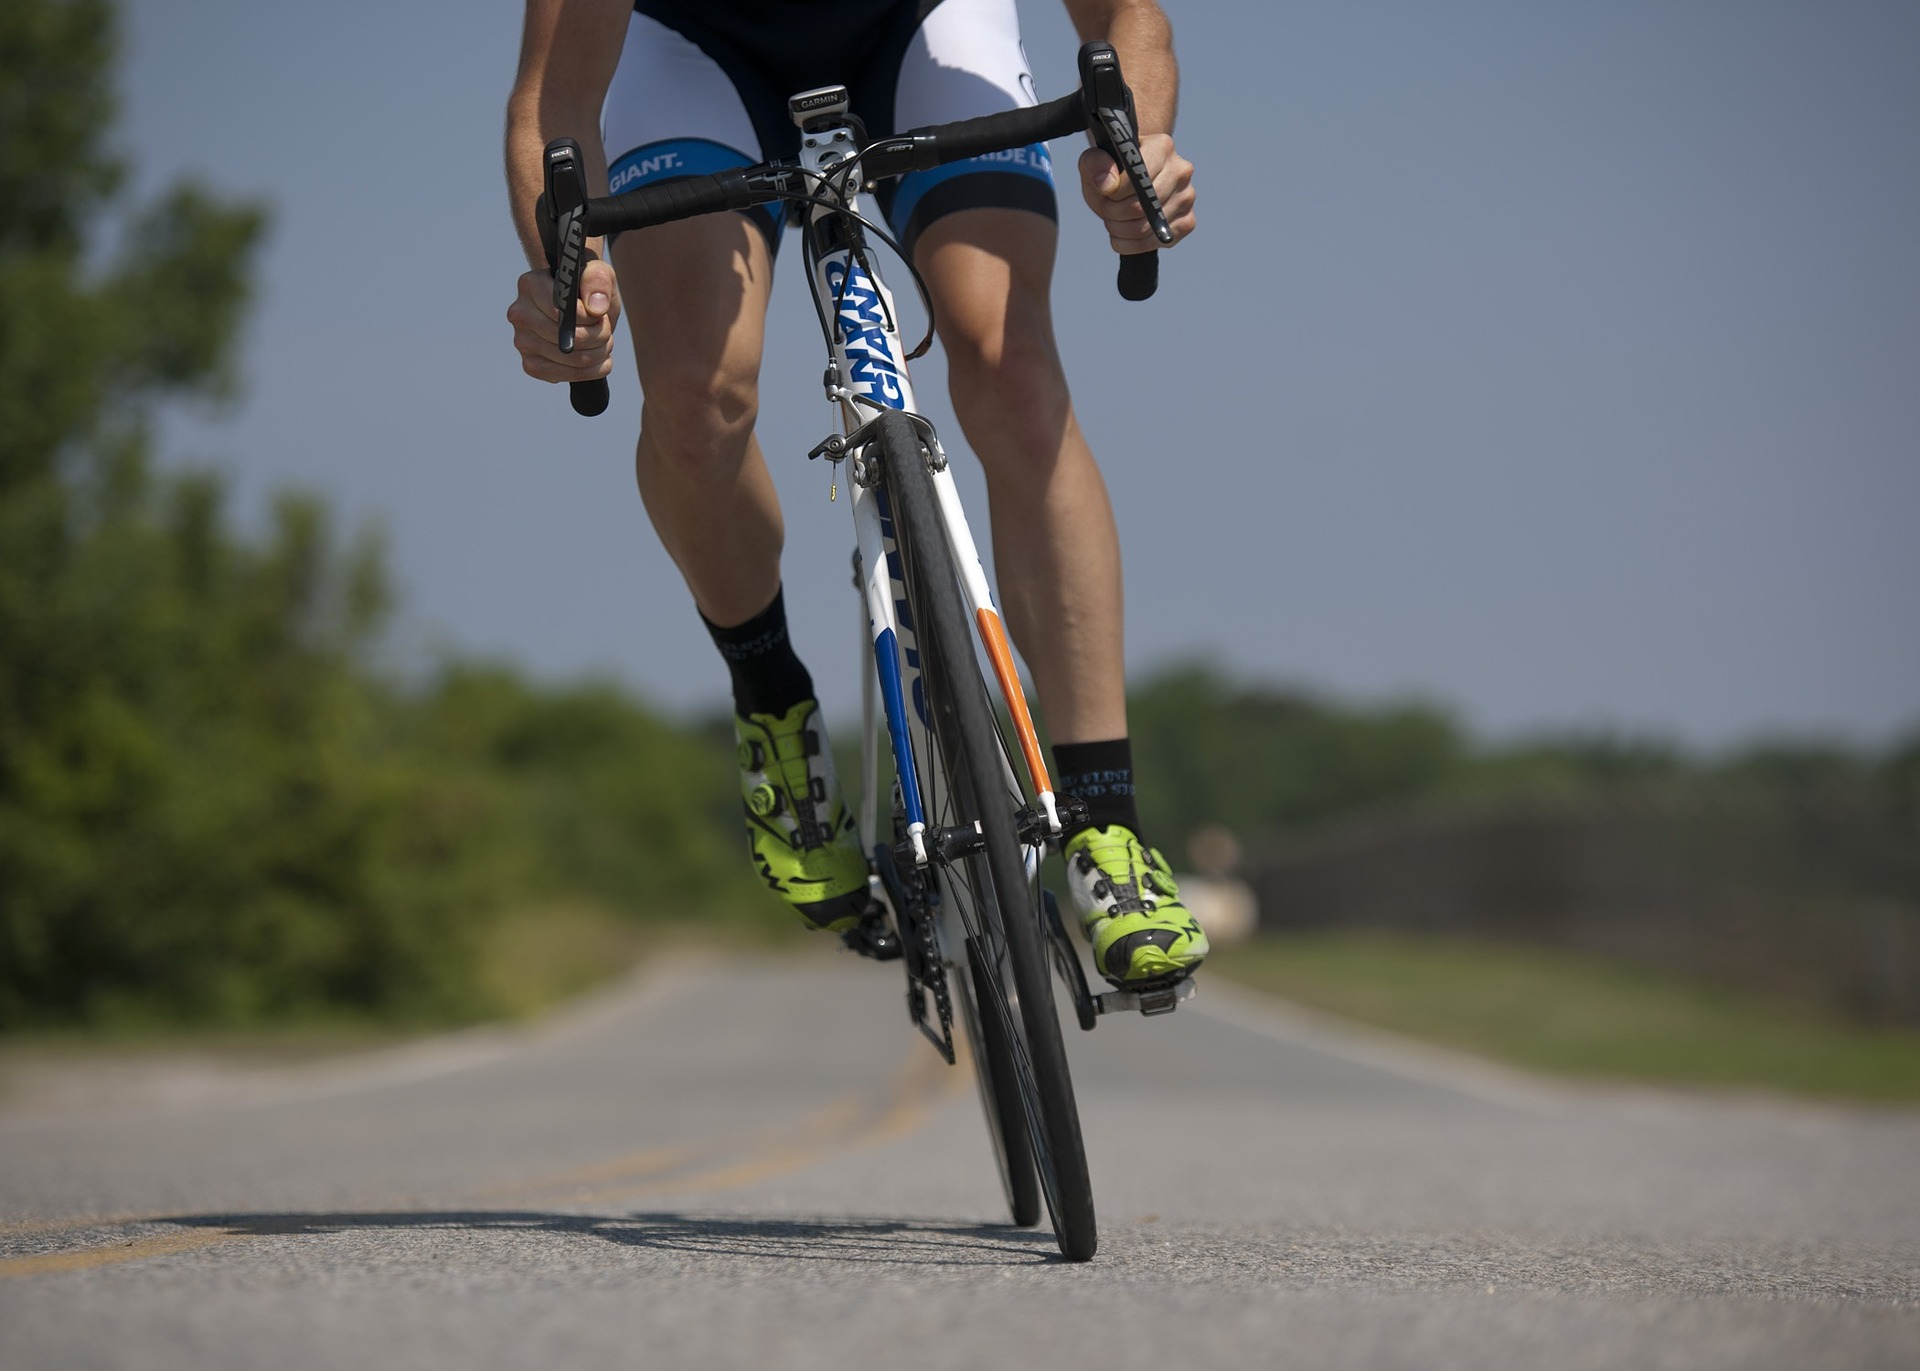 Helpful Tips When Buying Your First Road Bike